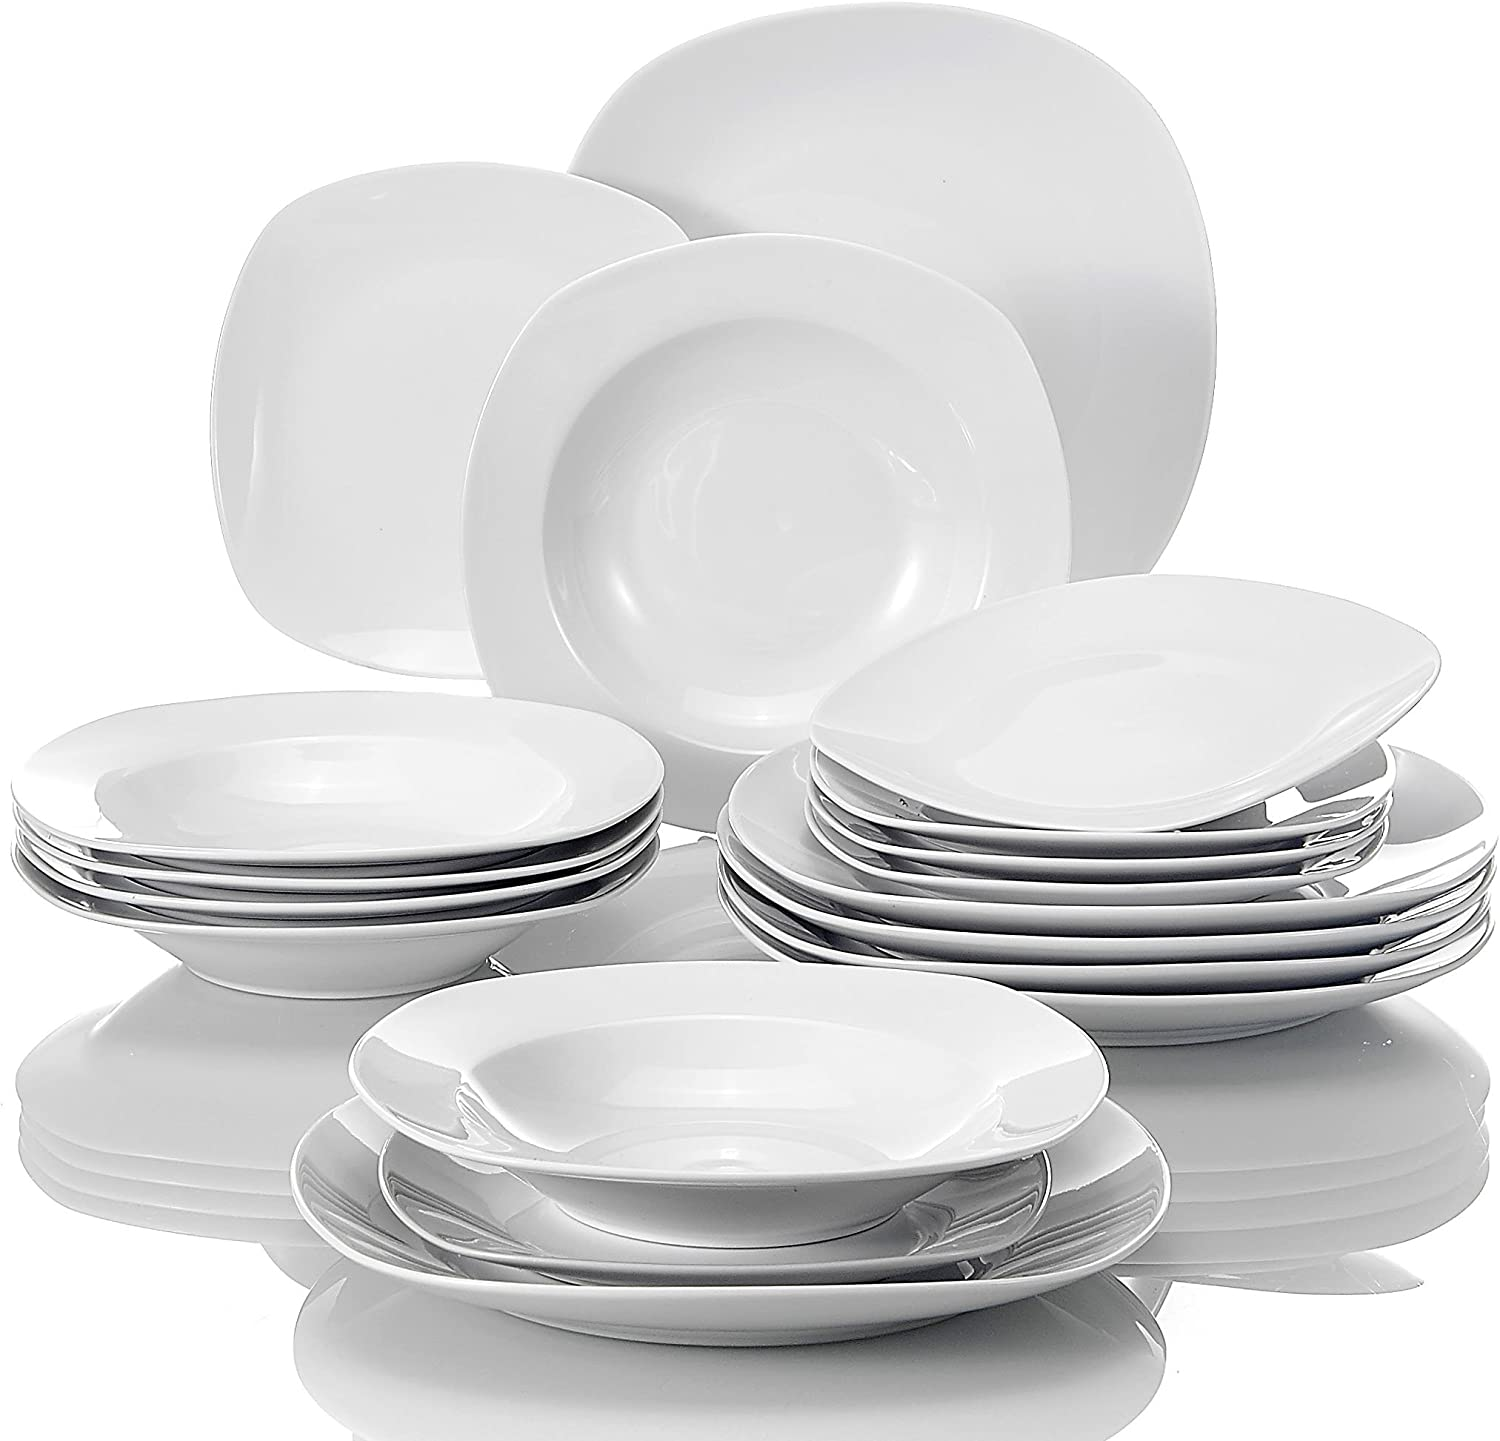 MALACASA, Series Elisa, 18-Piece Dinner Set Ivory White Porcelain WAS £29.99 NOW £19.49 w/code V9JK2DNS with 5% voucher on listing @ Amazon